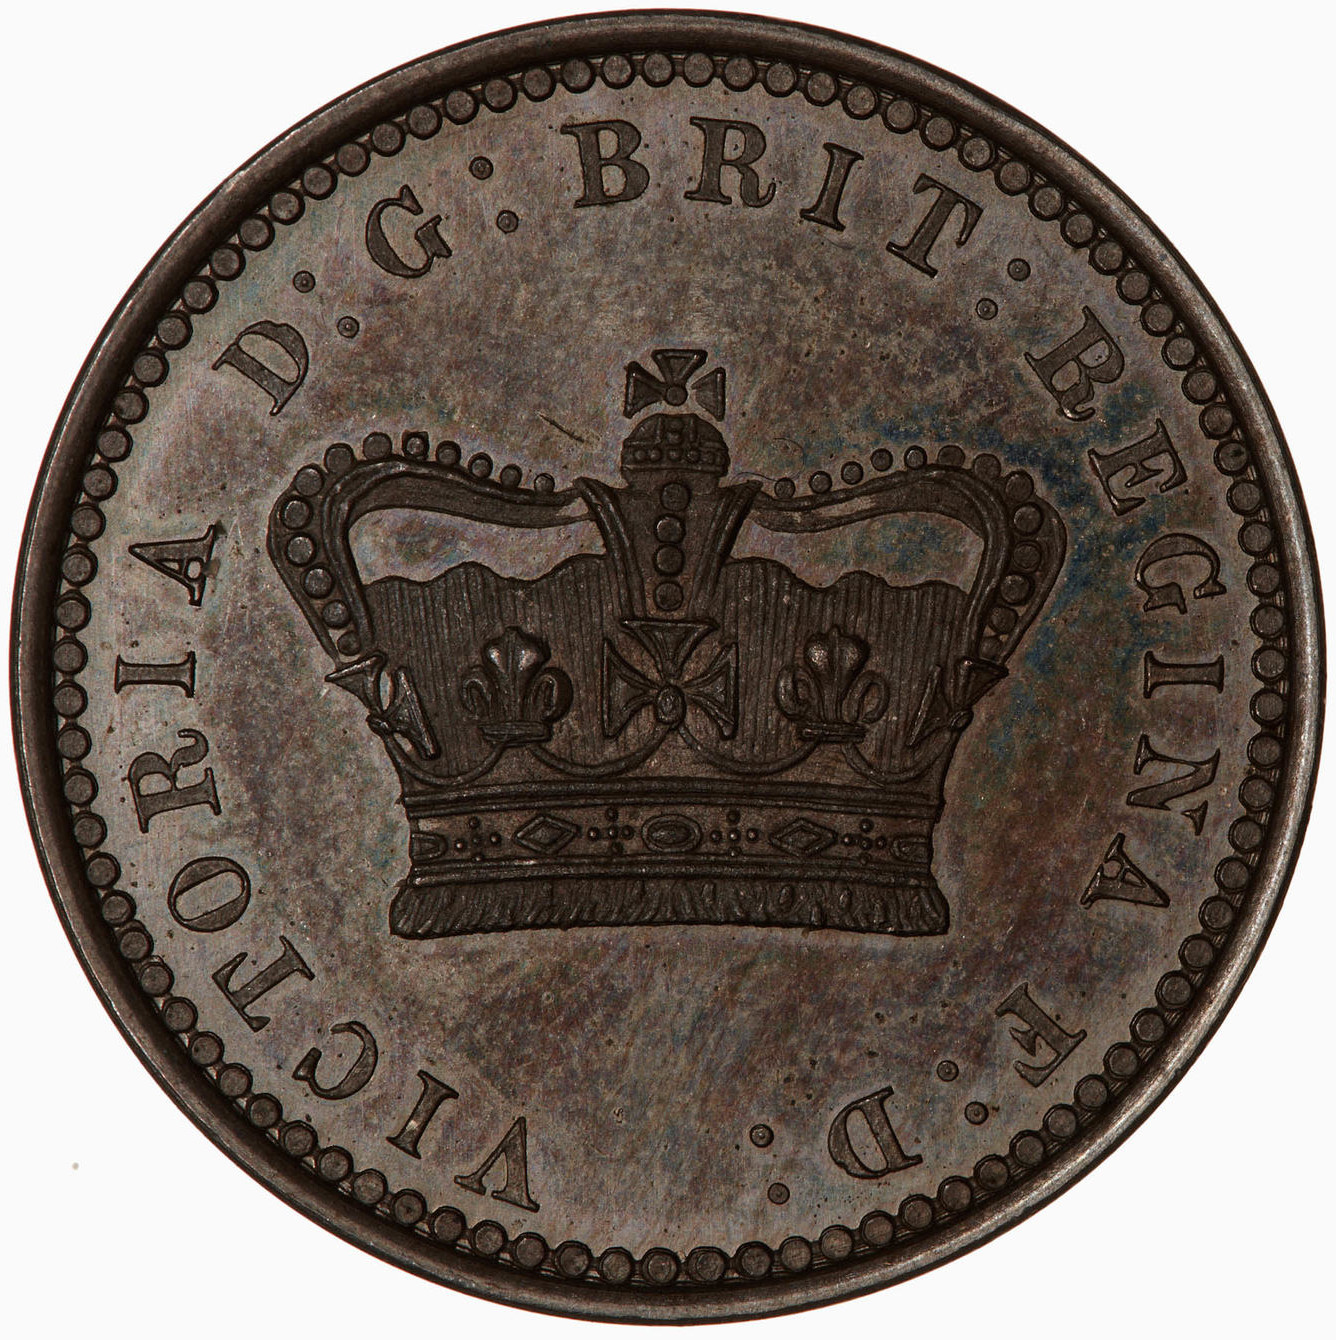 Twopence 1859 (Pattern): Photo Pattern Coin - Twopence, Queen Victoria, Great Britain, 1859